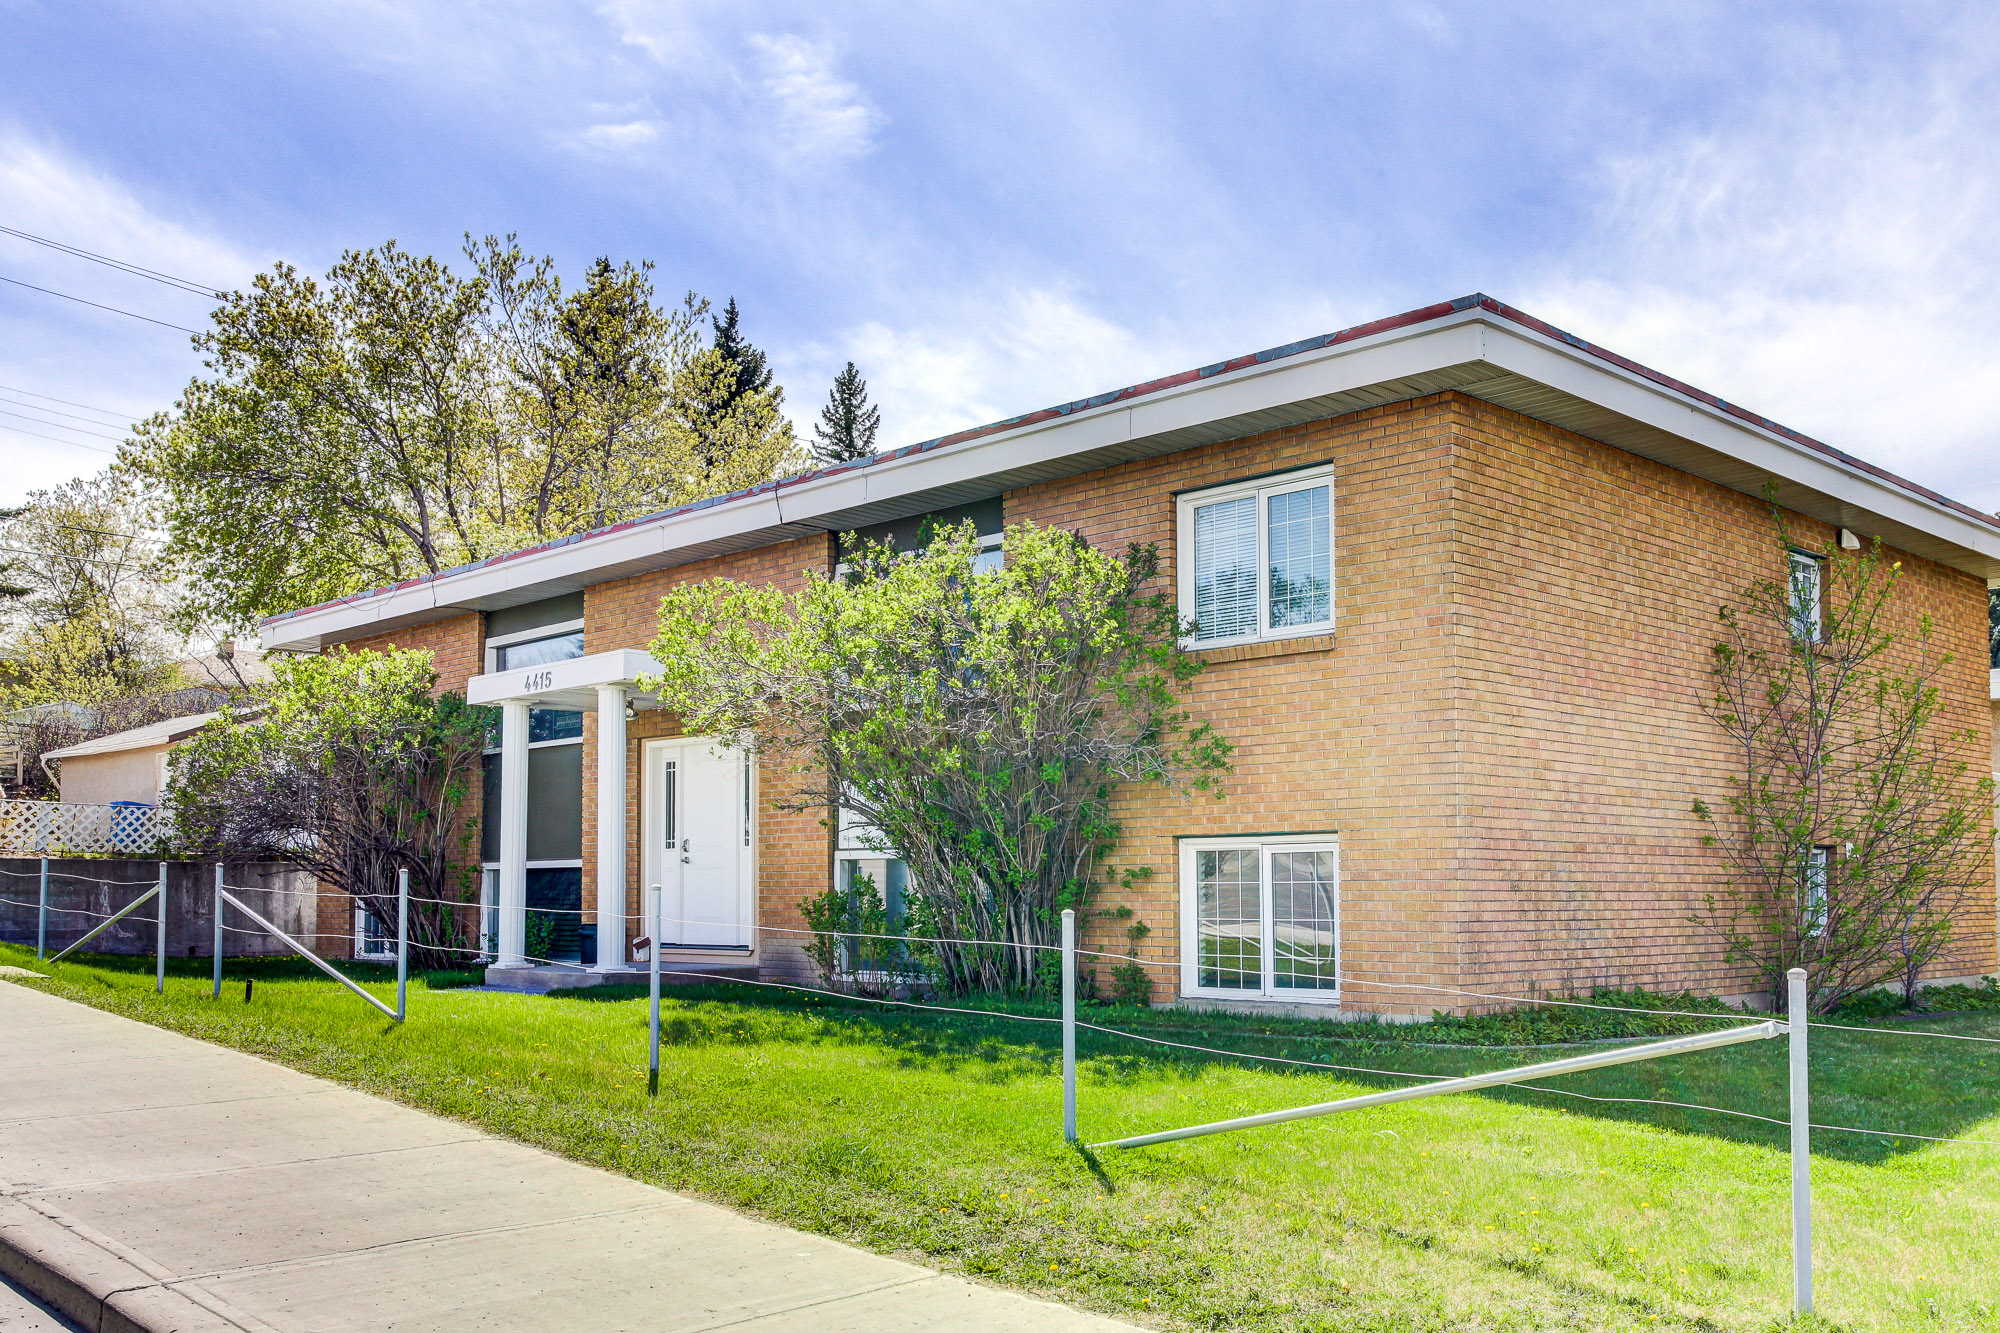 #1, 4415 Centre Street NE in Calgary, AB is Now Available